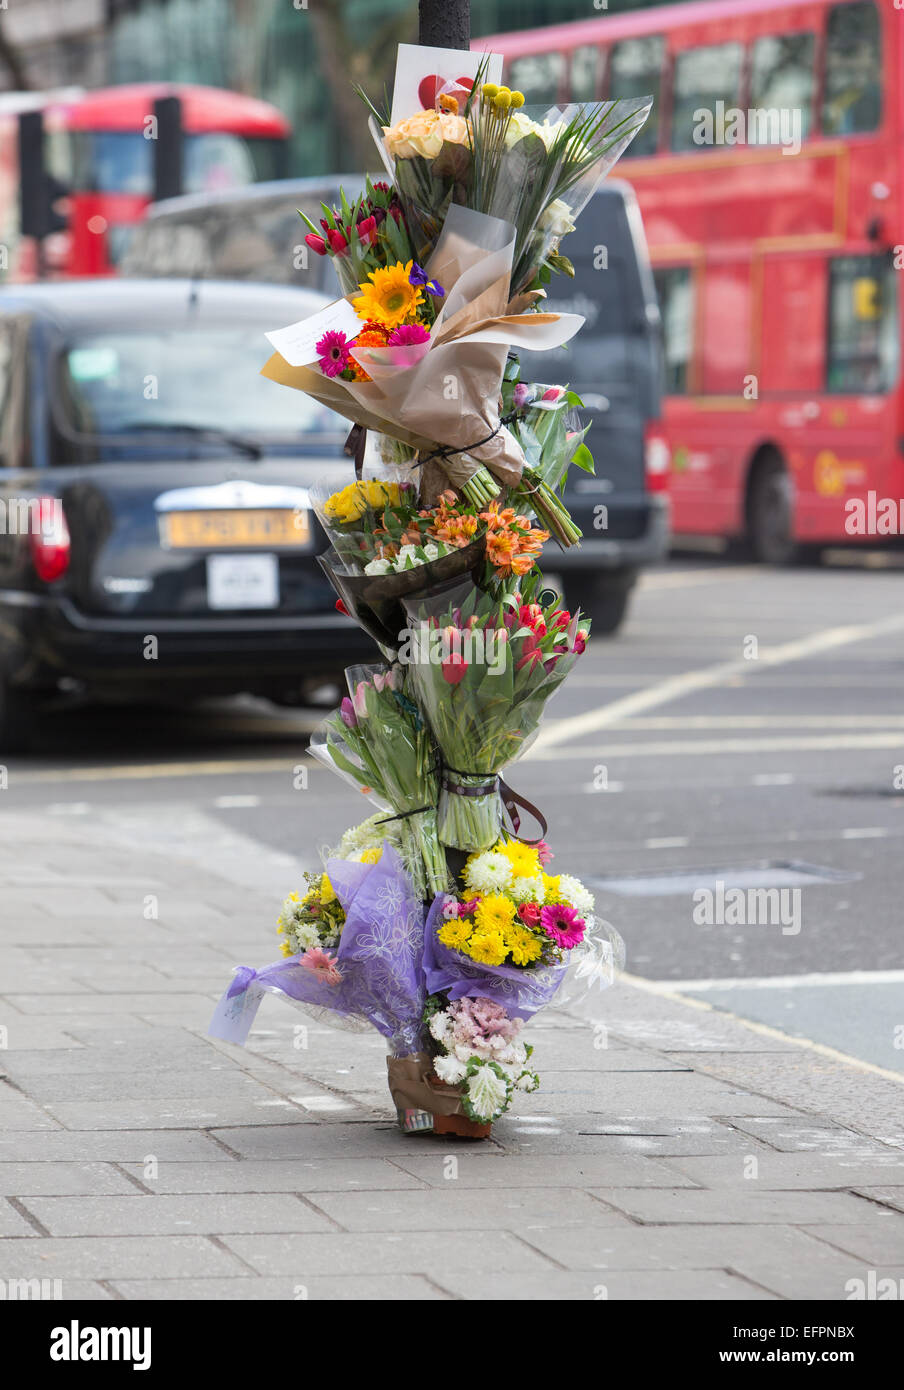 Floral tributes left at the scene of a fatal cyclist accident in central London - Stock Image